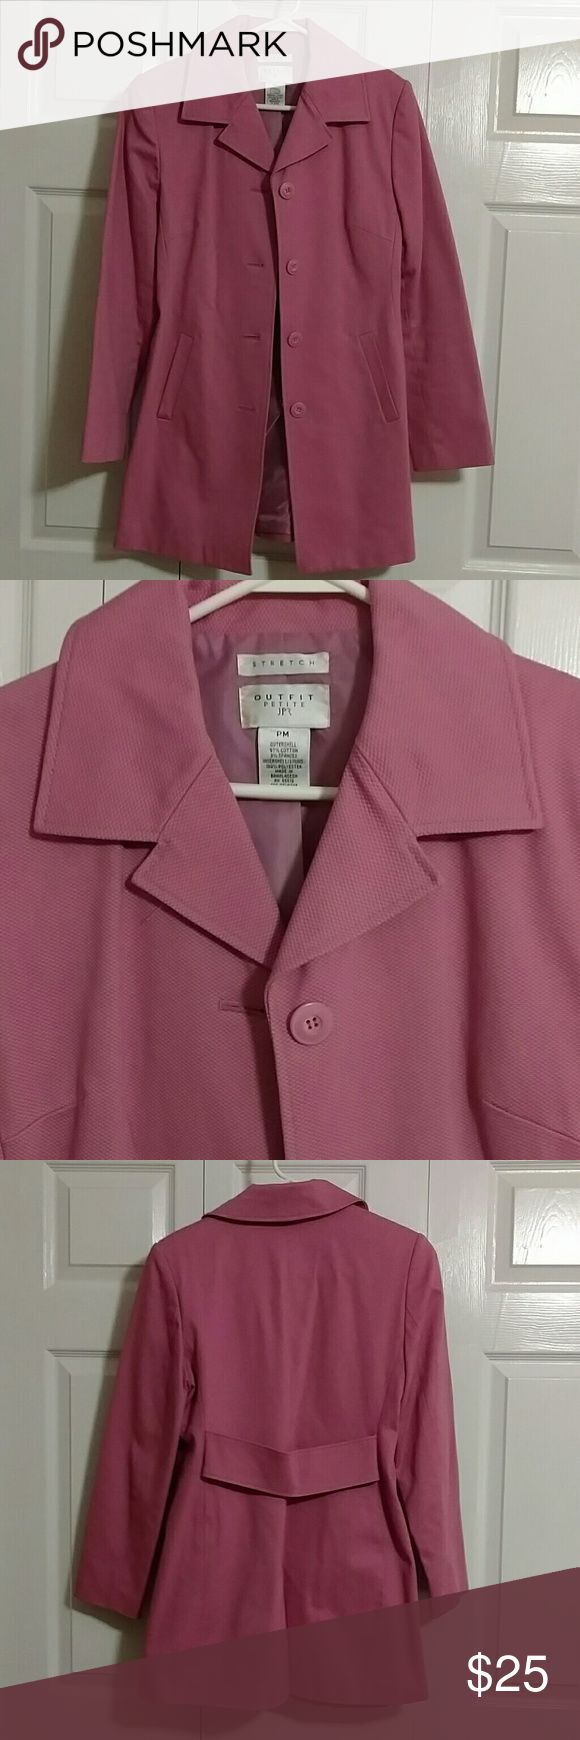 Pink hip length women's lightweight trench coat Pink hip length women's lightweight trench coat, sz petite medium. Great condition. Only worn 3 times. Outfit Petite Jackets & Coats Trench Coats